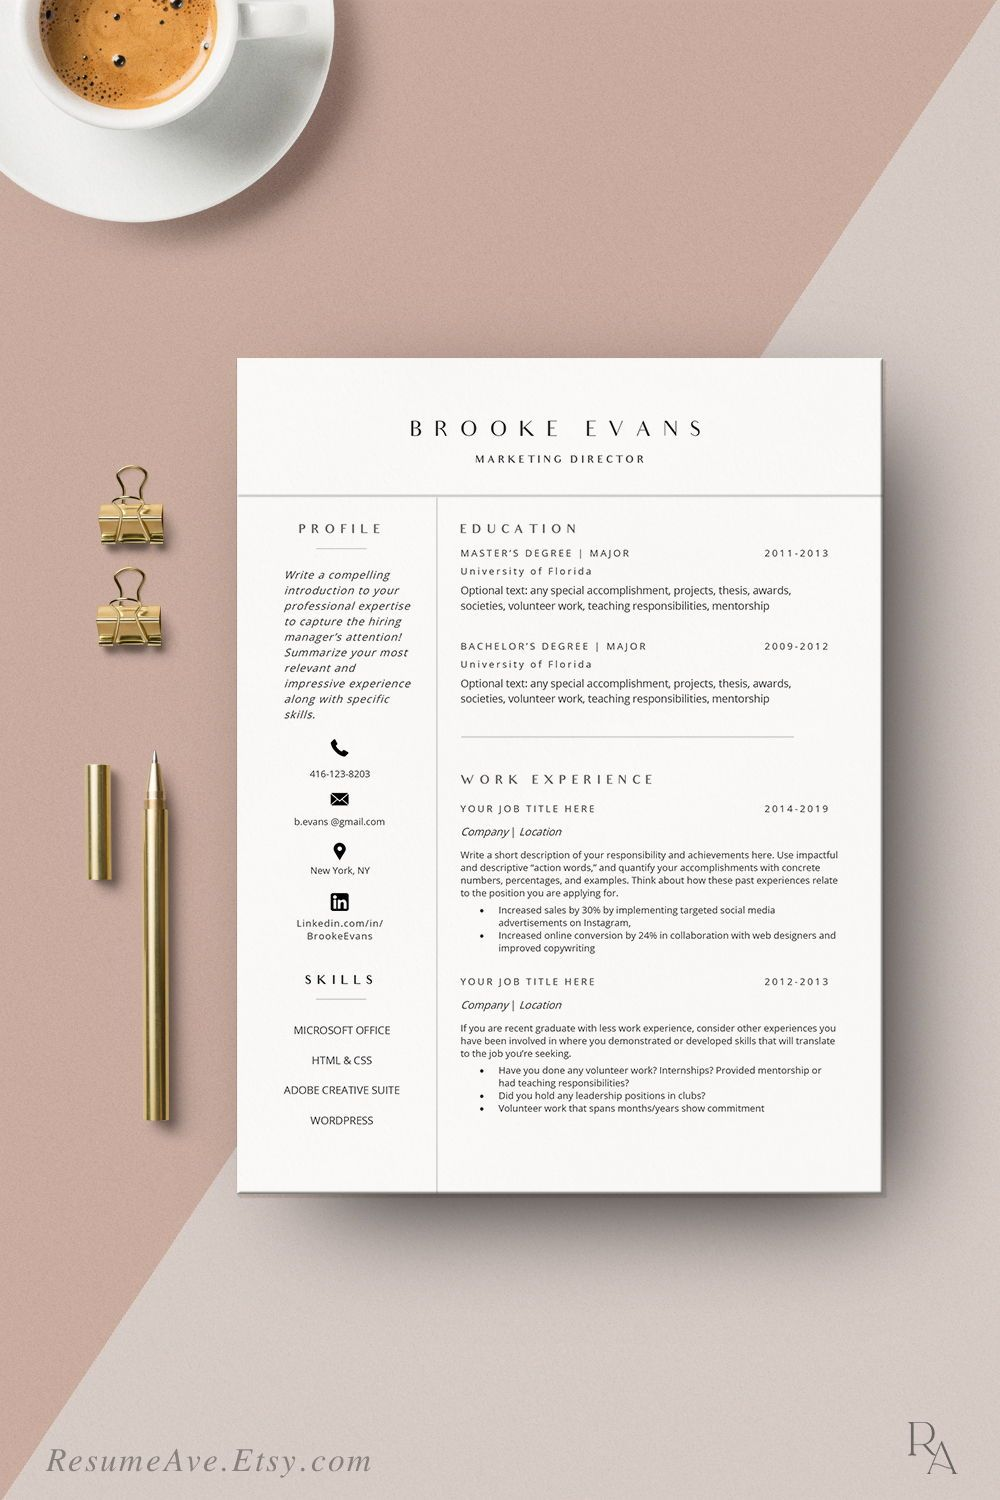 modern resume template word instant minimal etsy nursing the step office job contract Resume The 24 Step Modern Resume